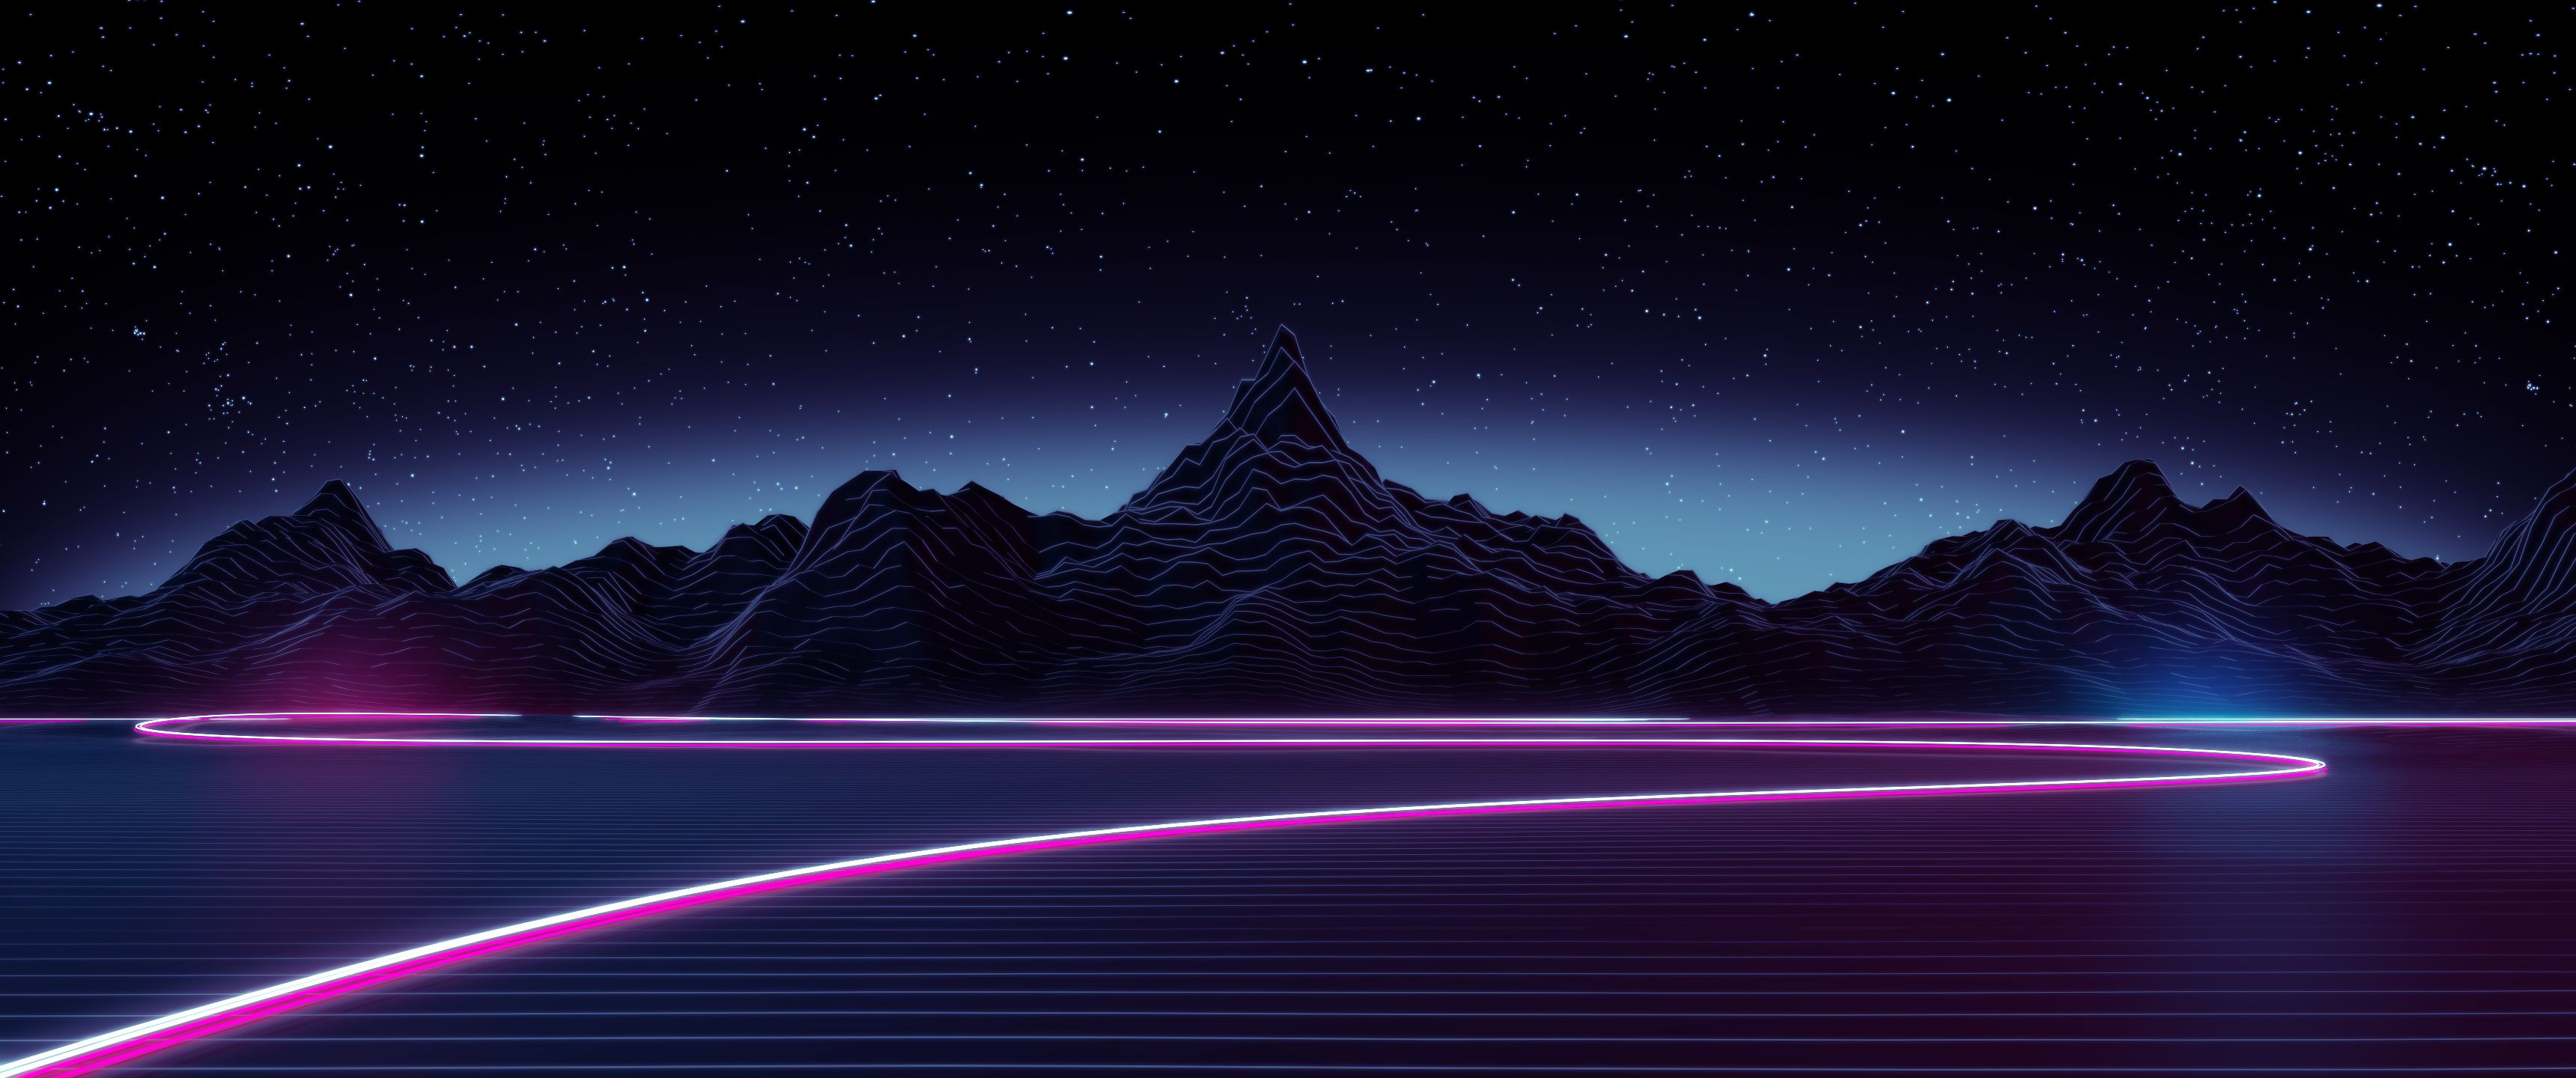 Outrun wallpaper dump in 2020 Vaporwave wallpaper, Neon